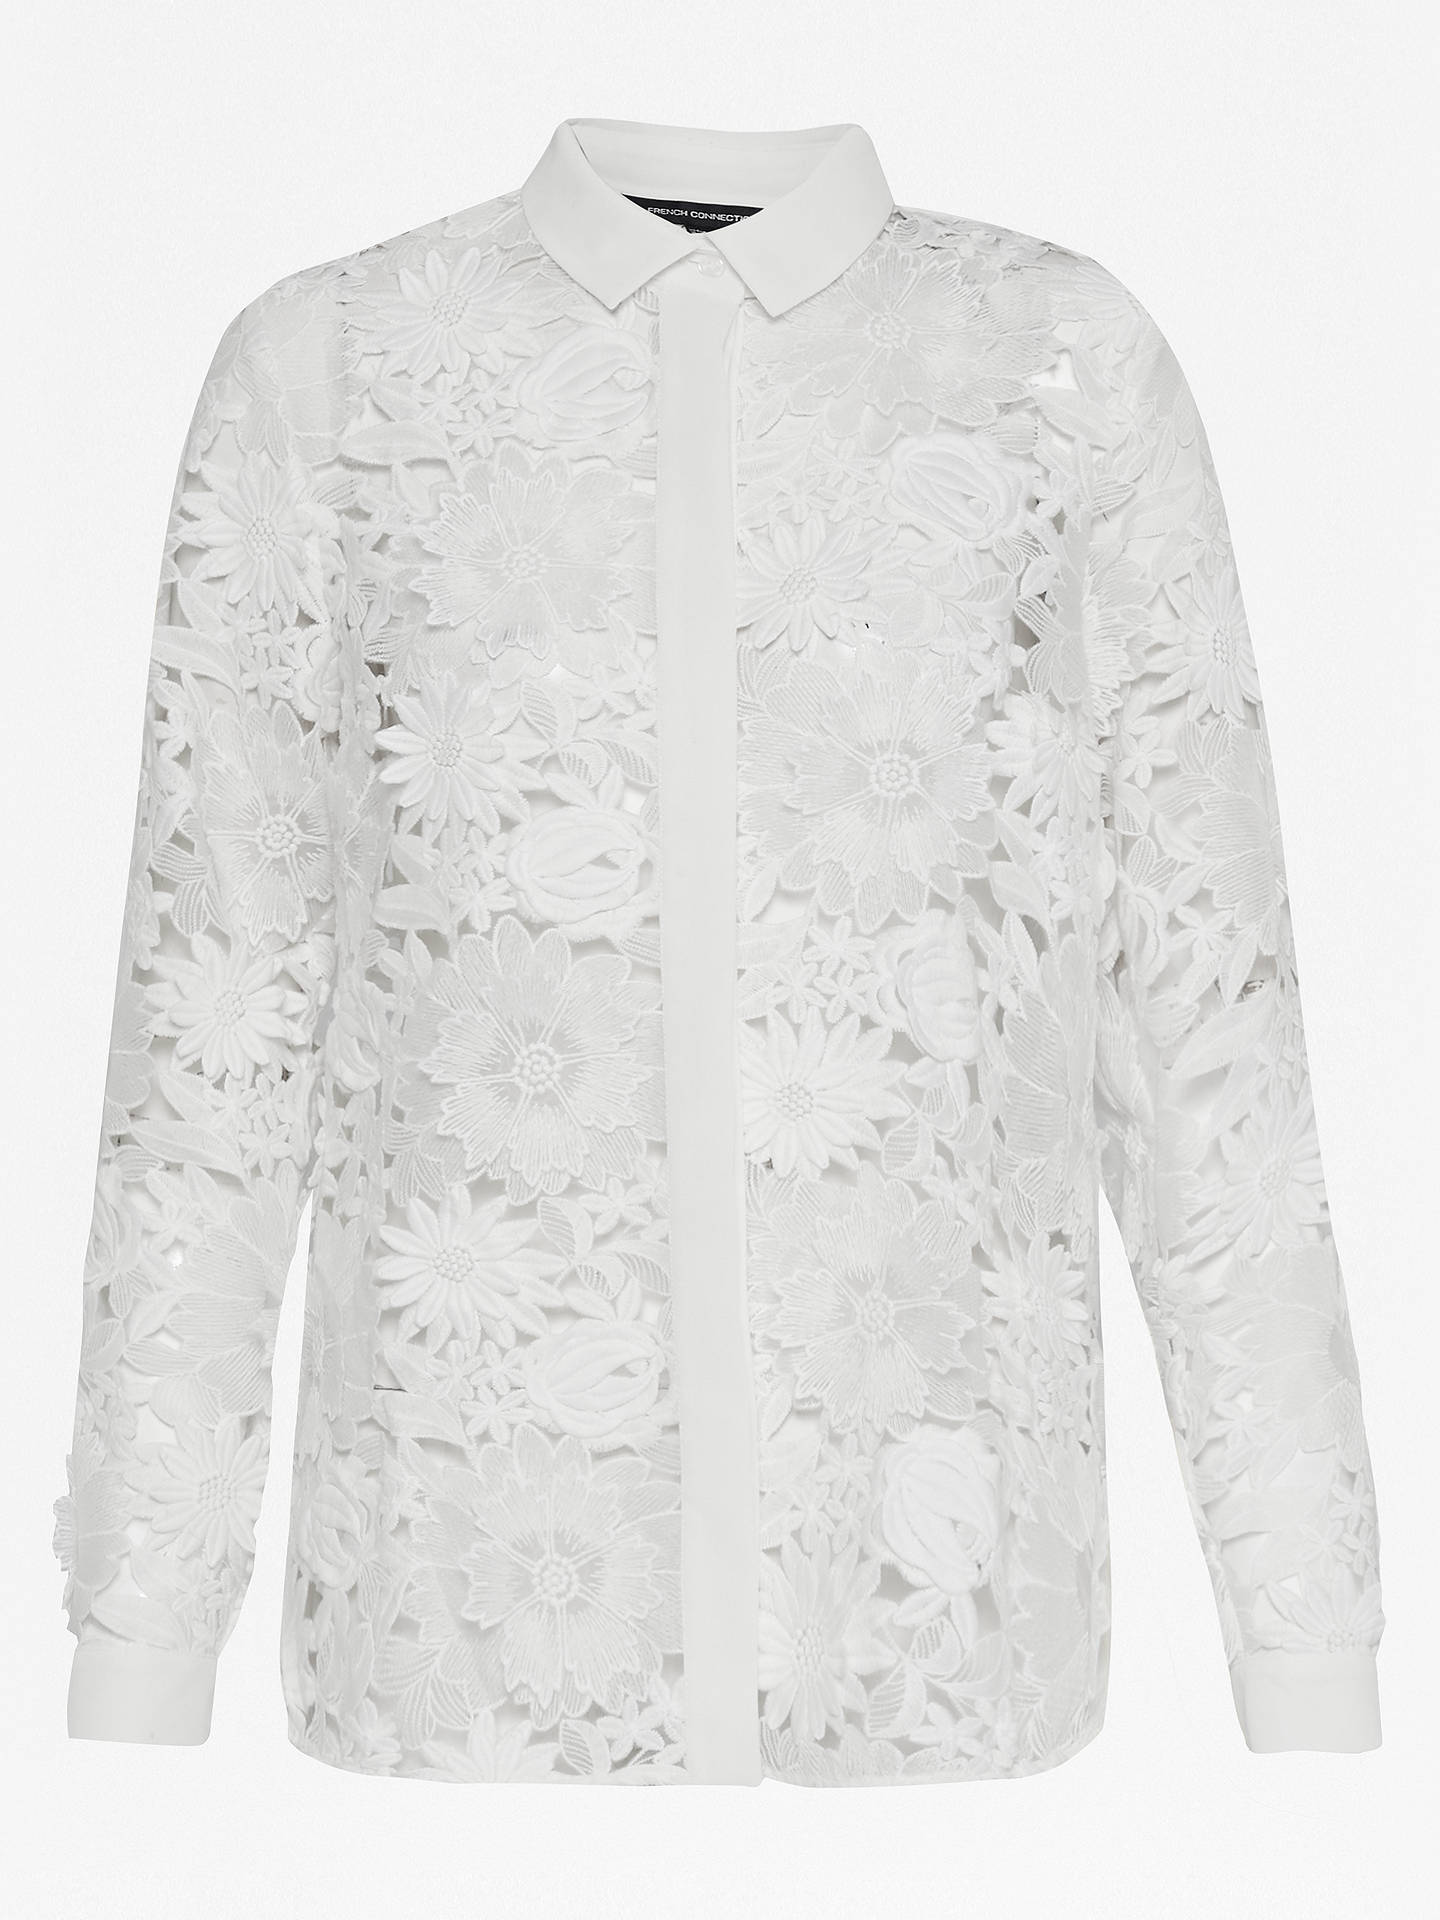 38ff8a9164cc8 Buy French Connection Manzoni Lace Long Sleeve Shirt, Summer White, 6  Online at johnlewis ...